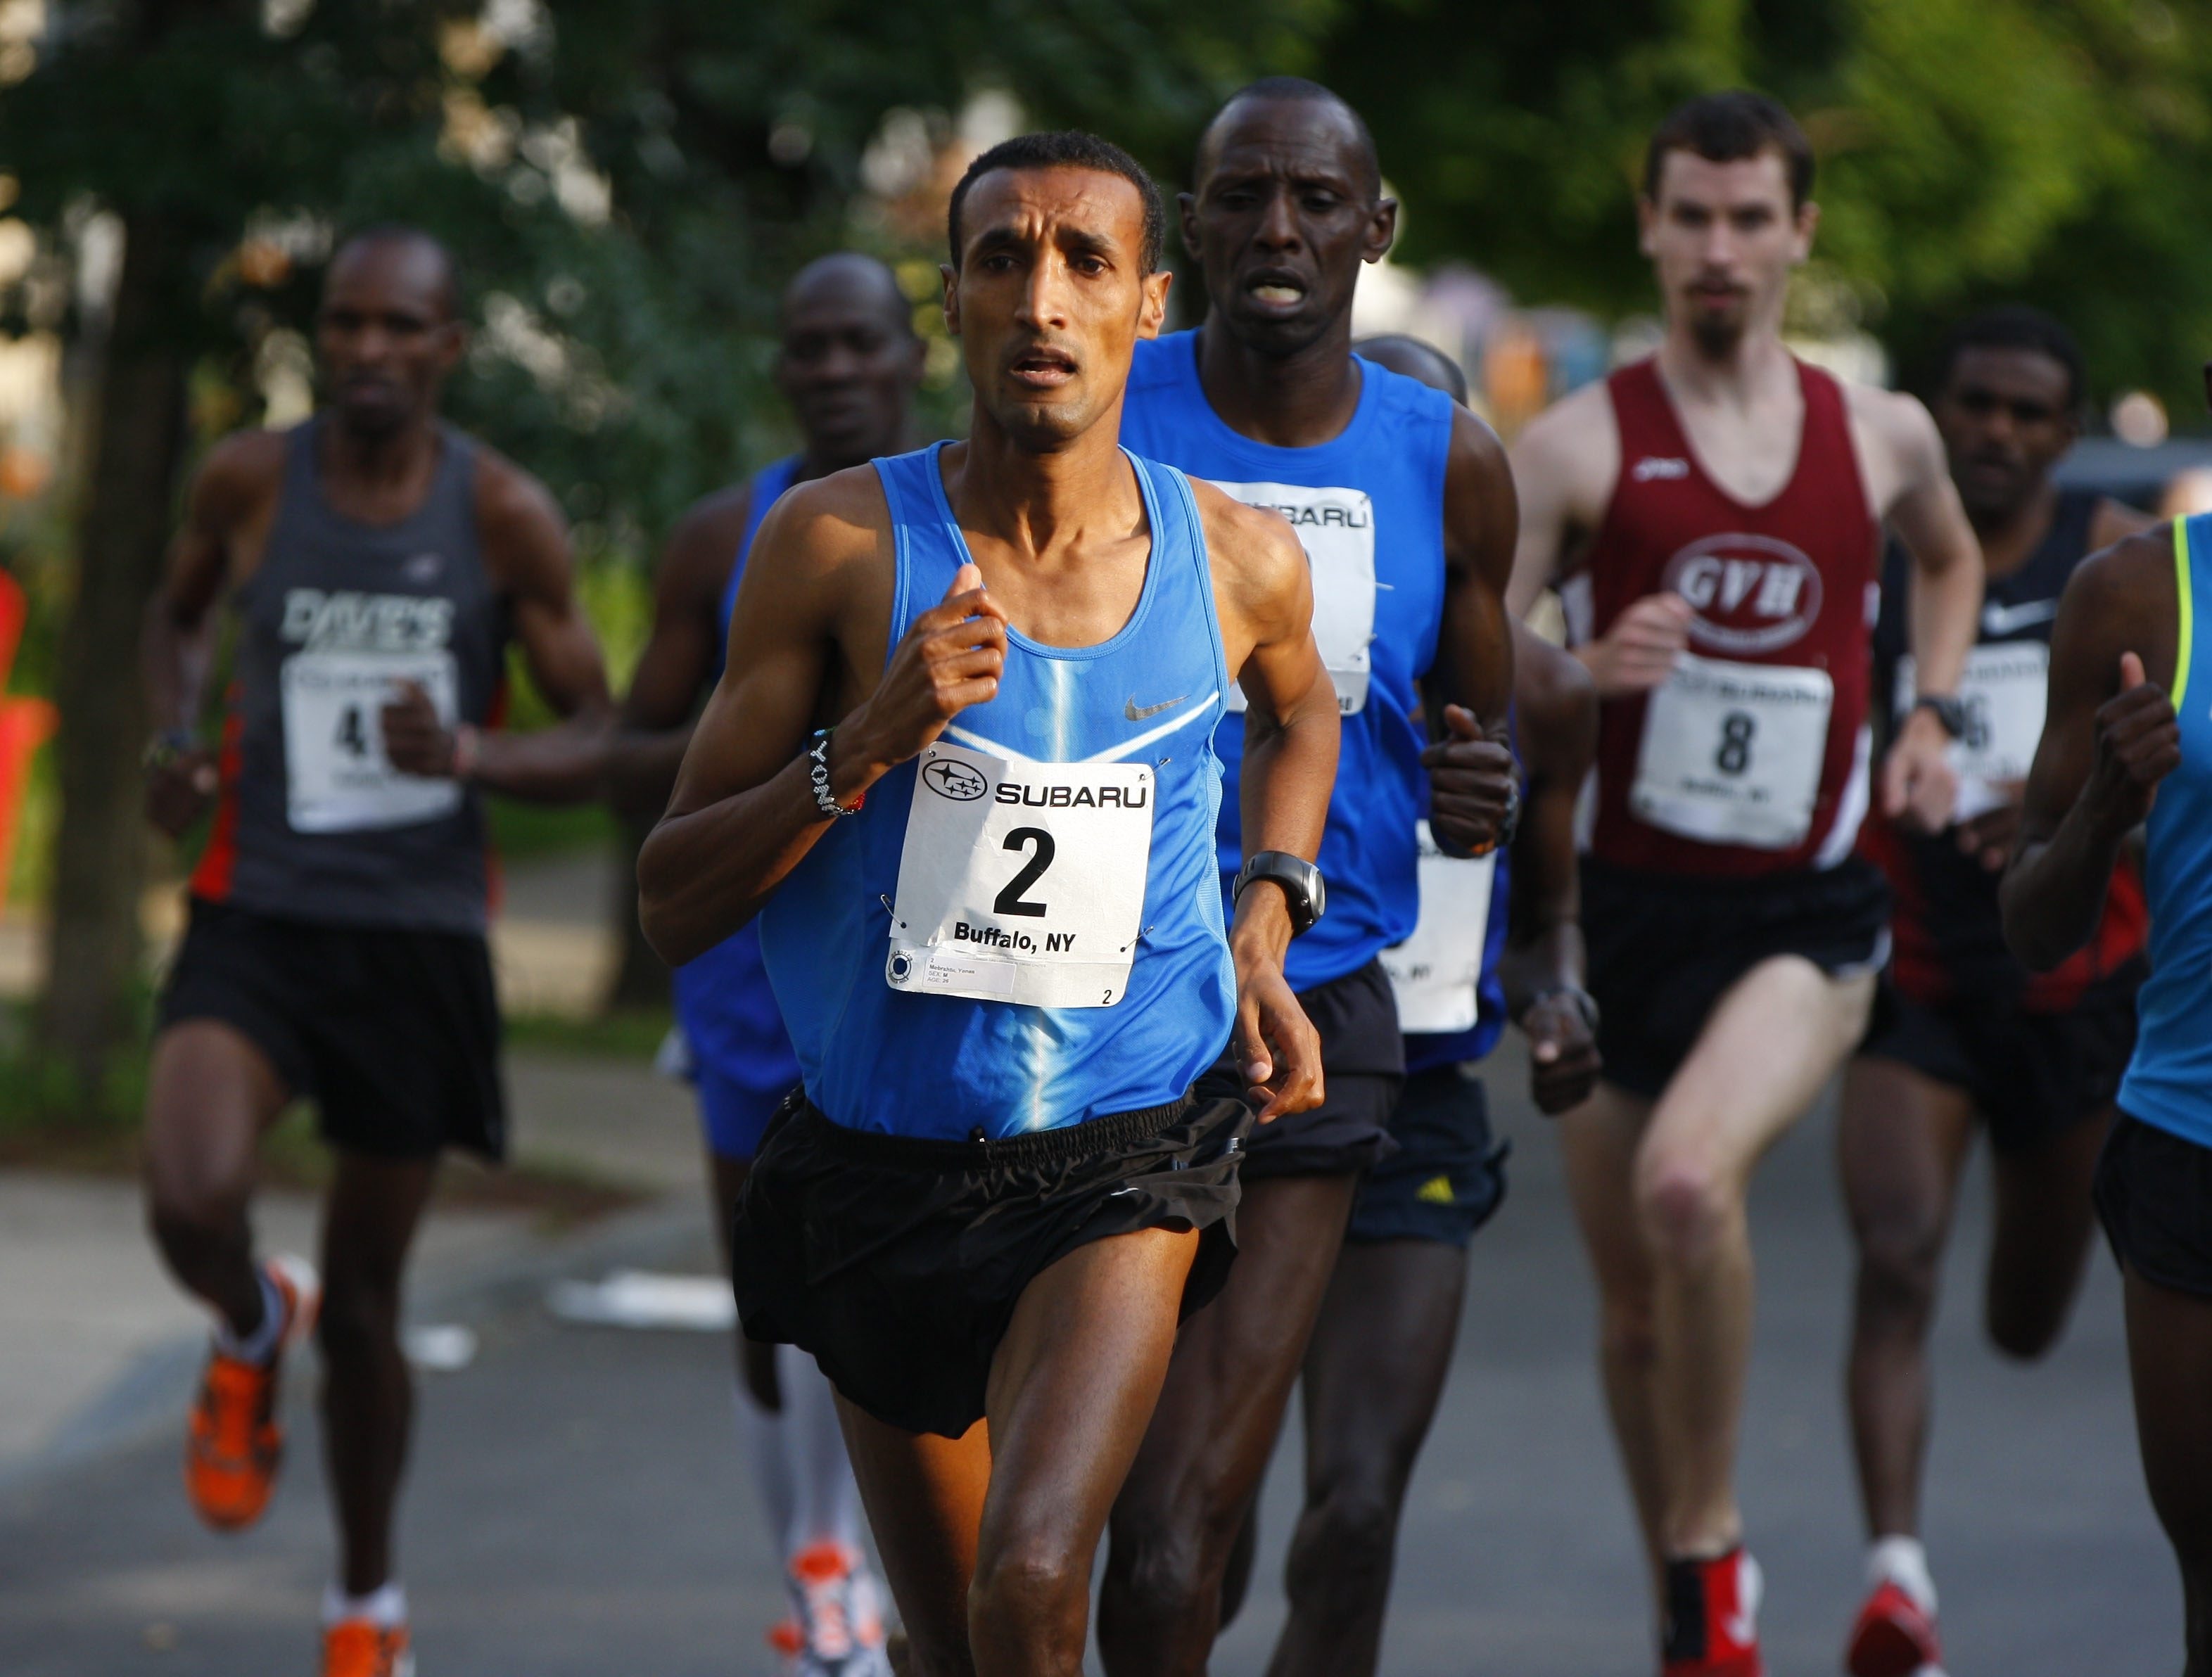 Yonas Mebrahtu of Eritrea will return to defend his title in the Subaru Buffalo 4-Mile Chase on Friday.